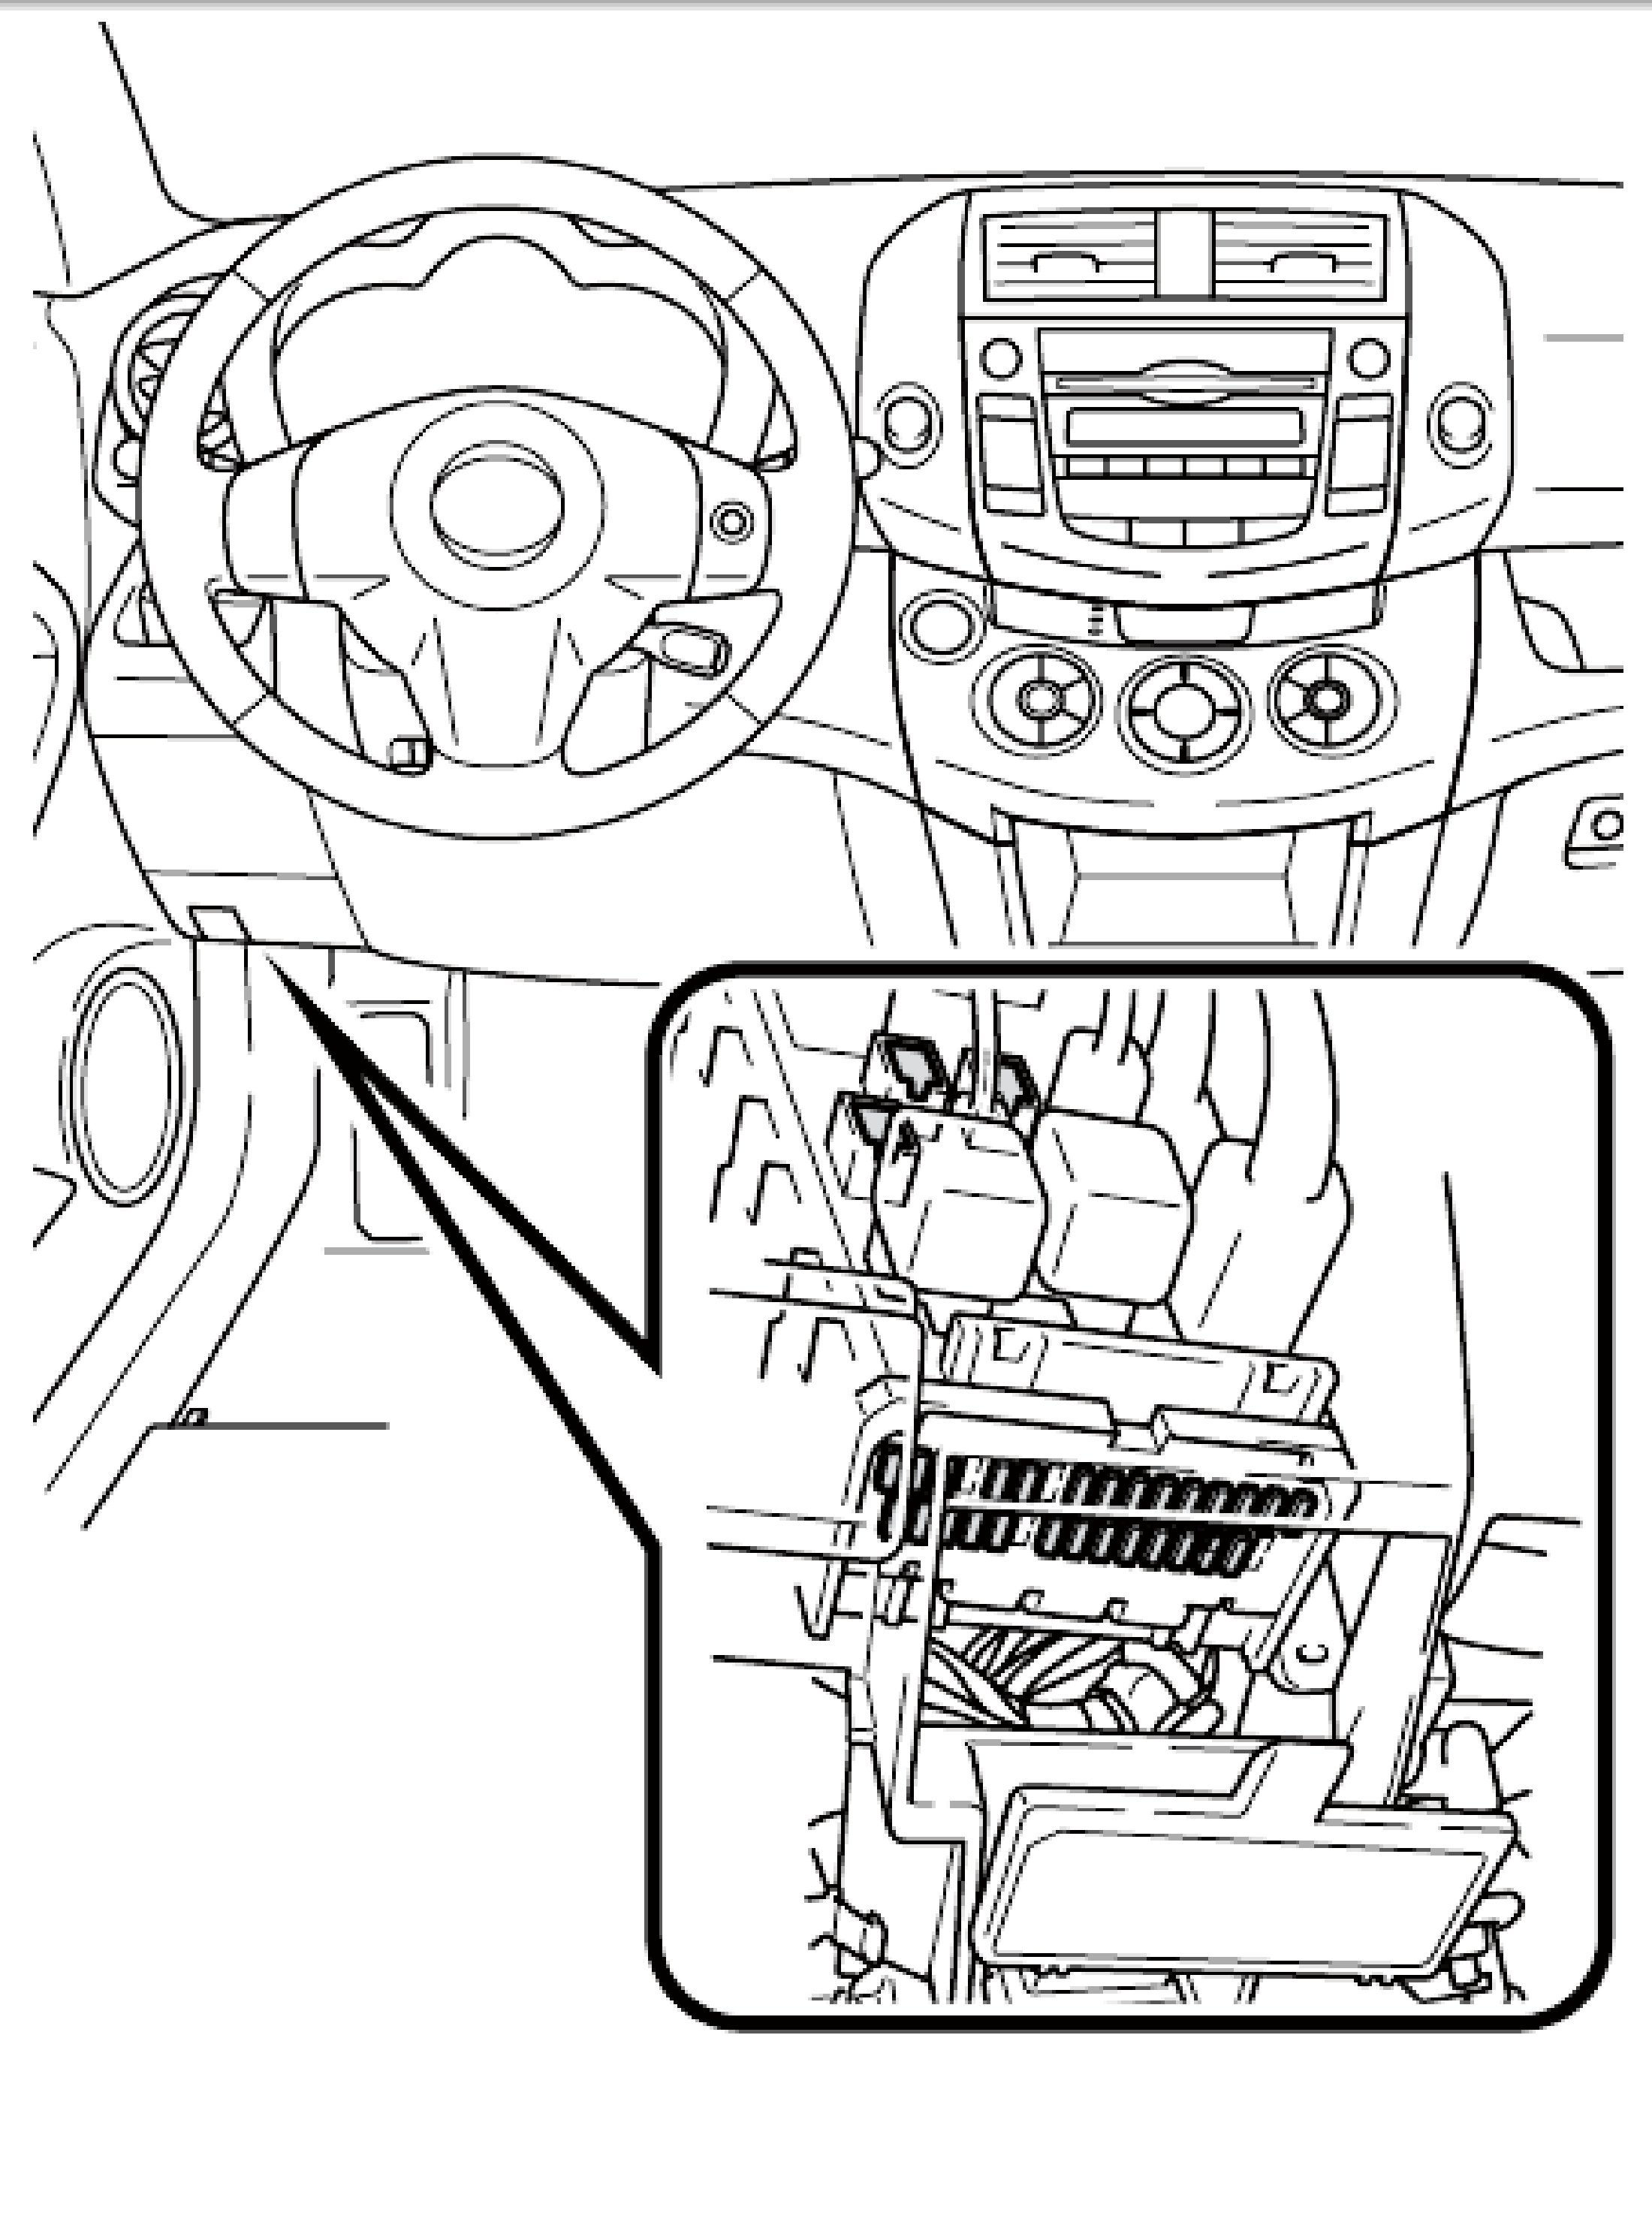 Toyotum Solara Fuse Box Diagram